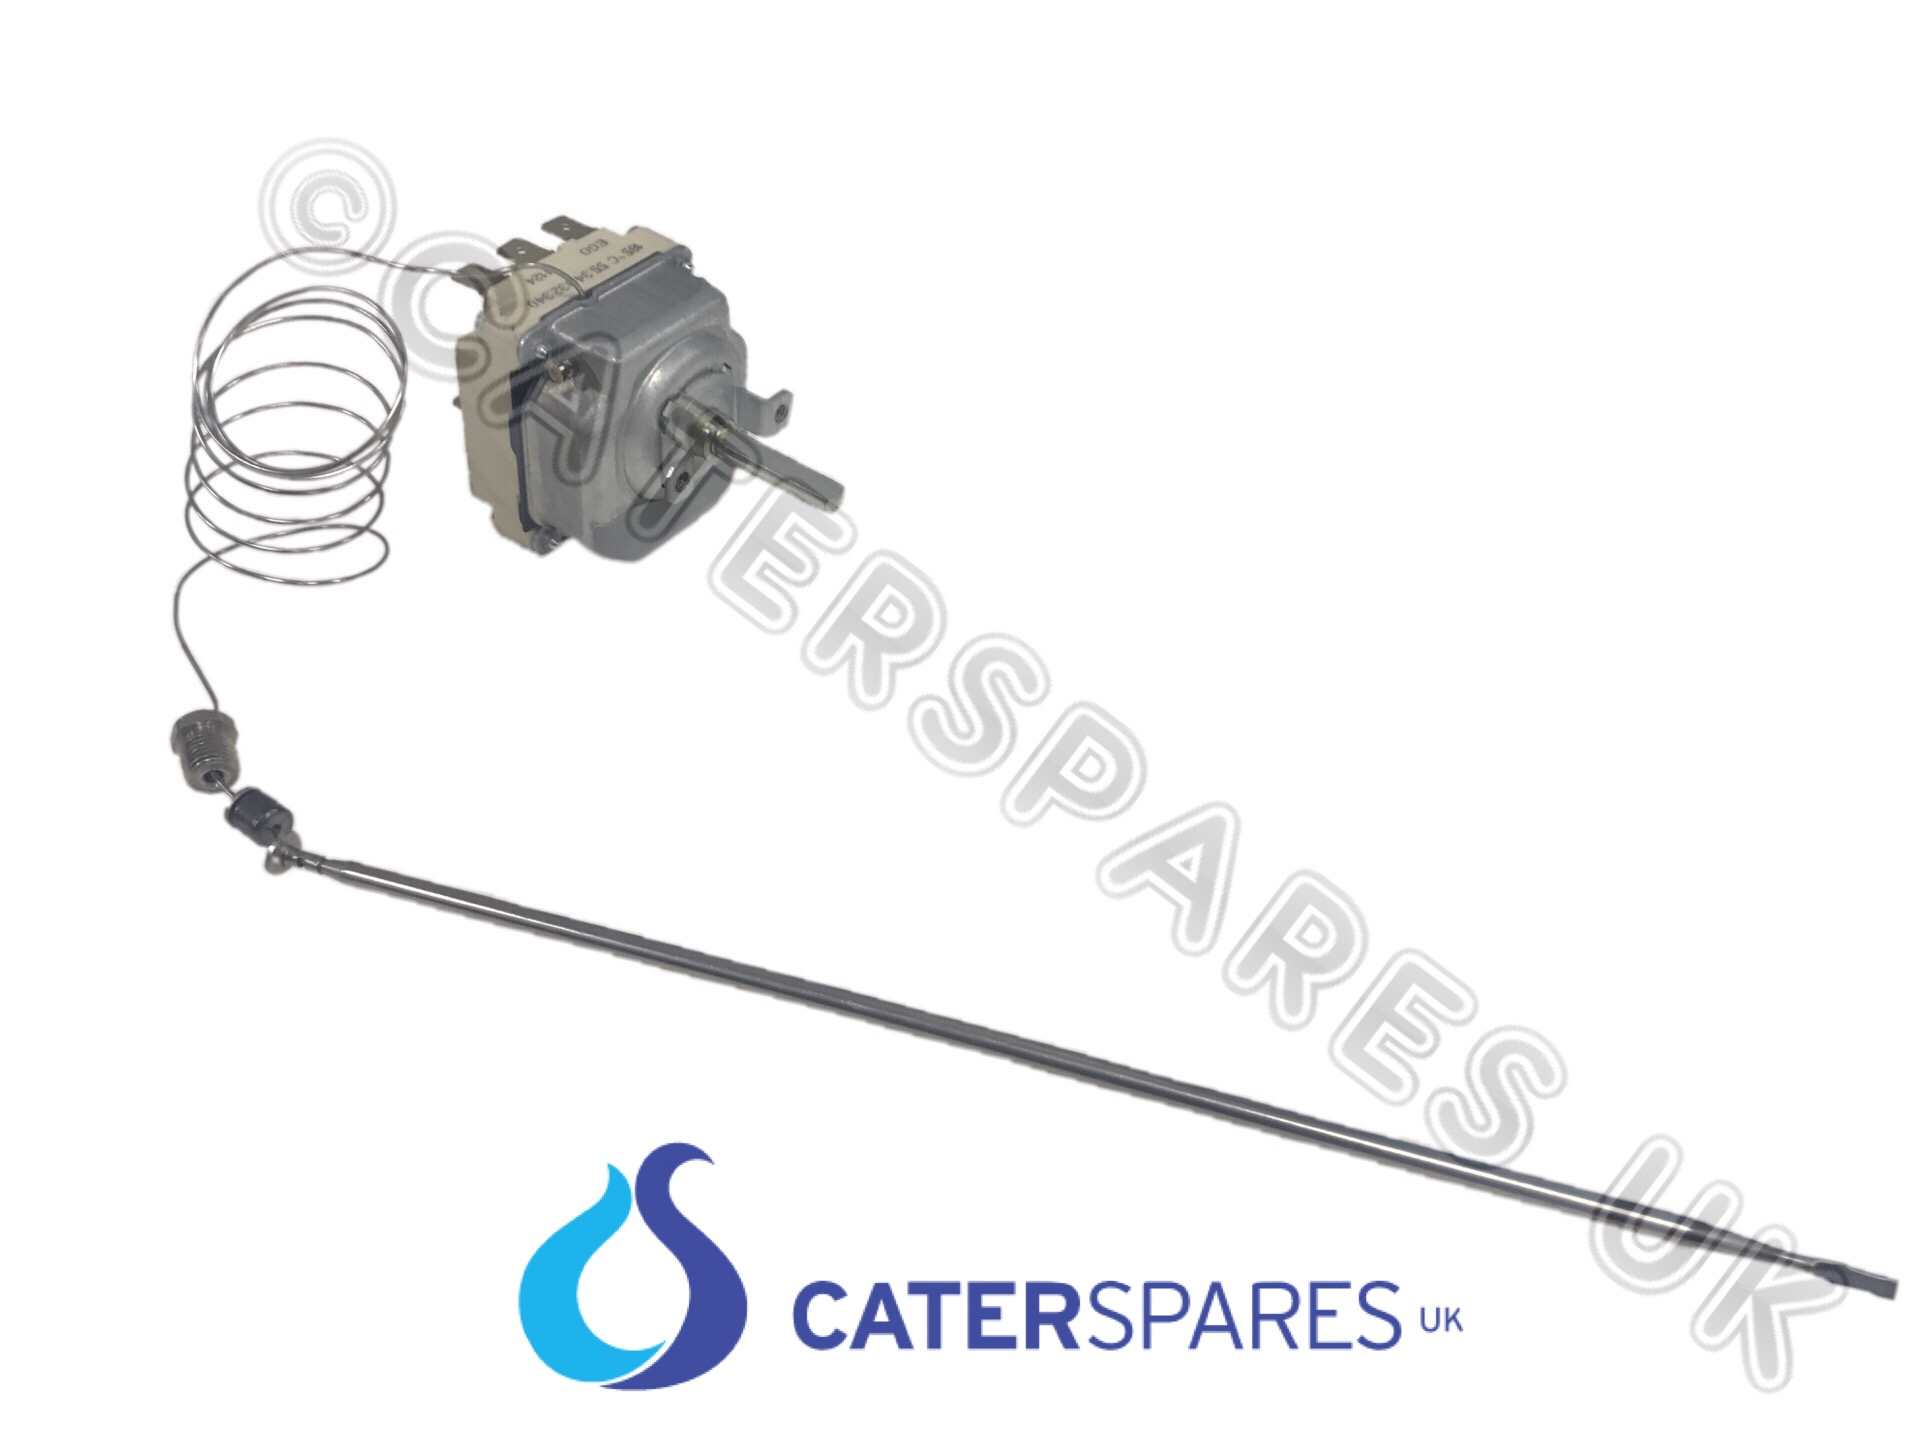 Ego 55 340 3 Phase Fryer Control Thermostat 130 185oc 6 Pin Caterspares